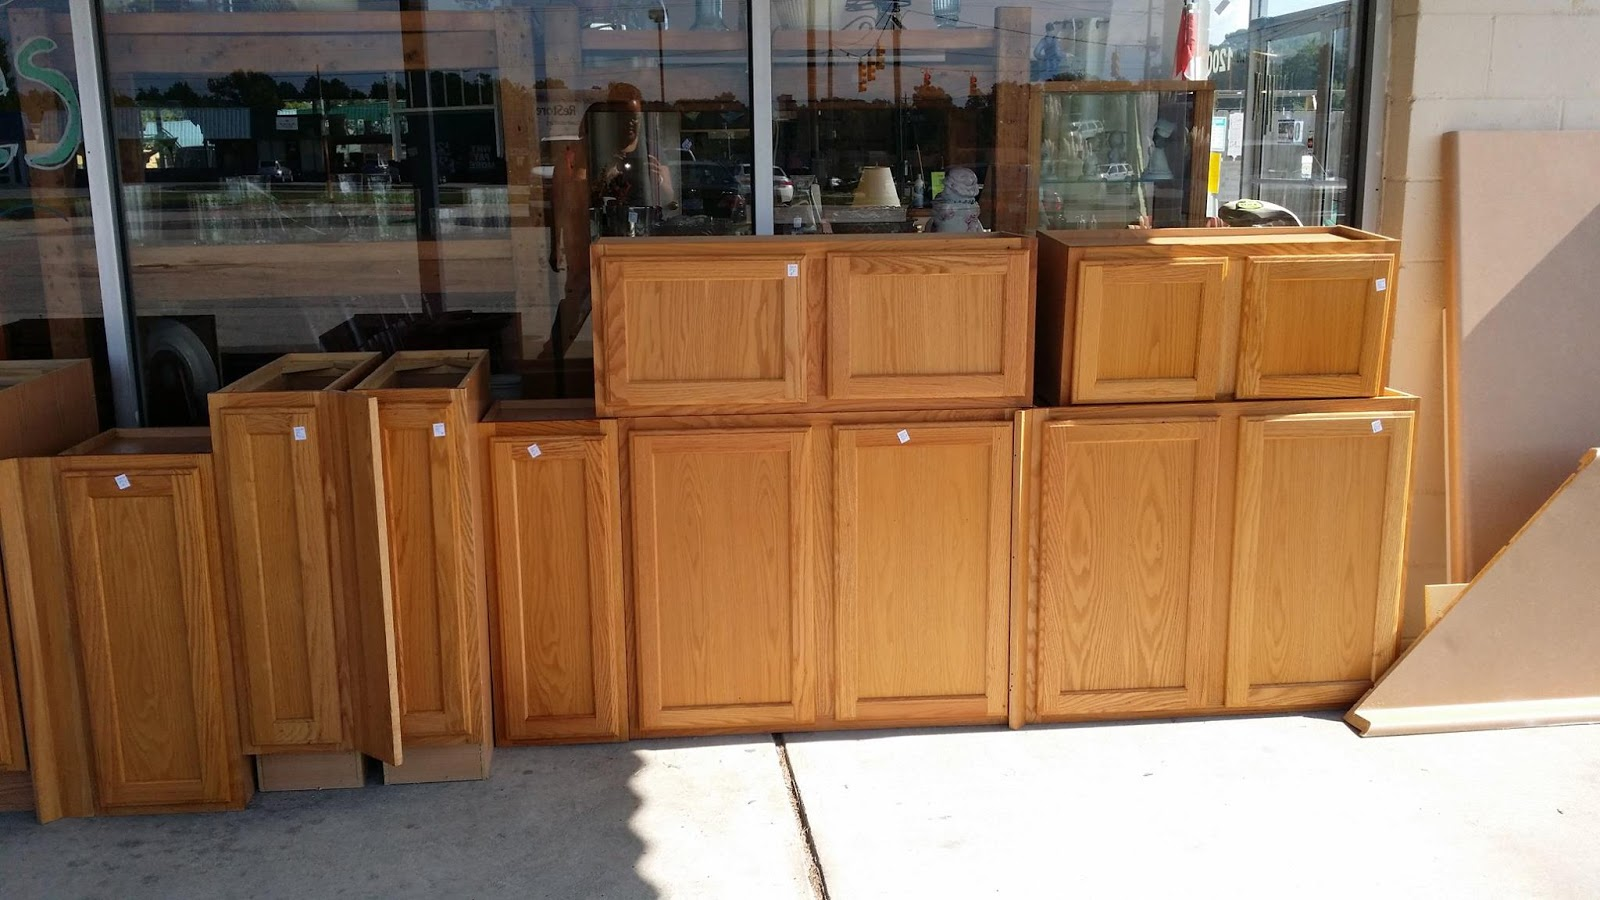 From old cabinets to diy play kitchen sisters what for Restoring old kitchen cabinets